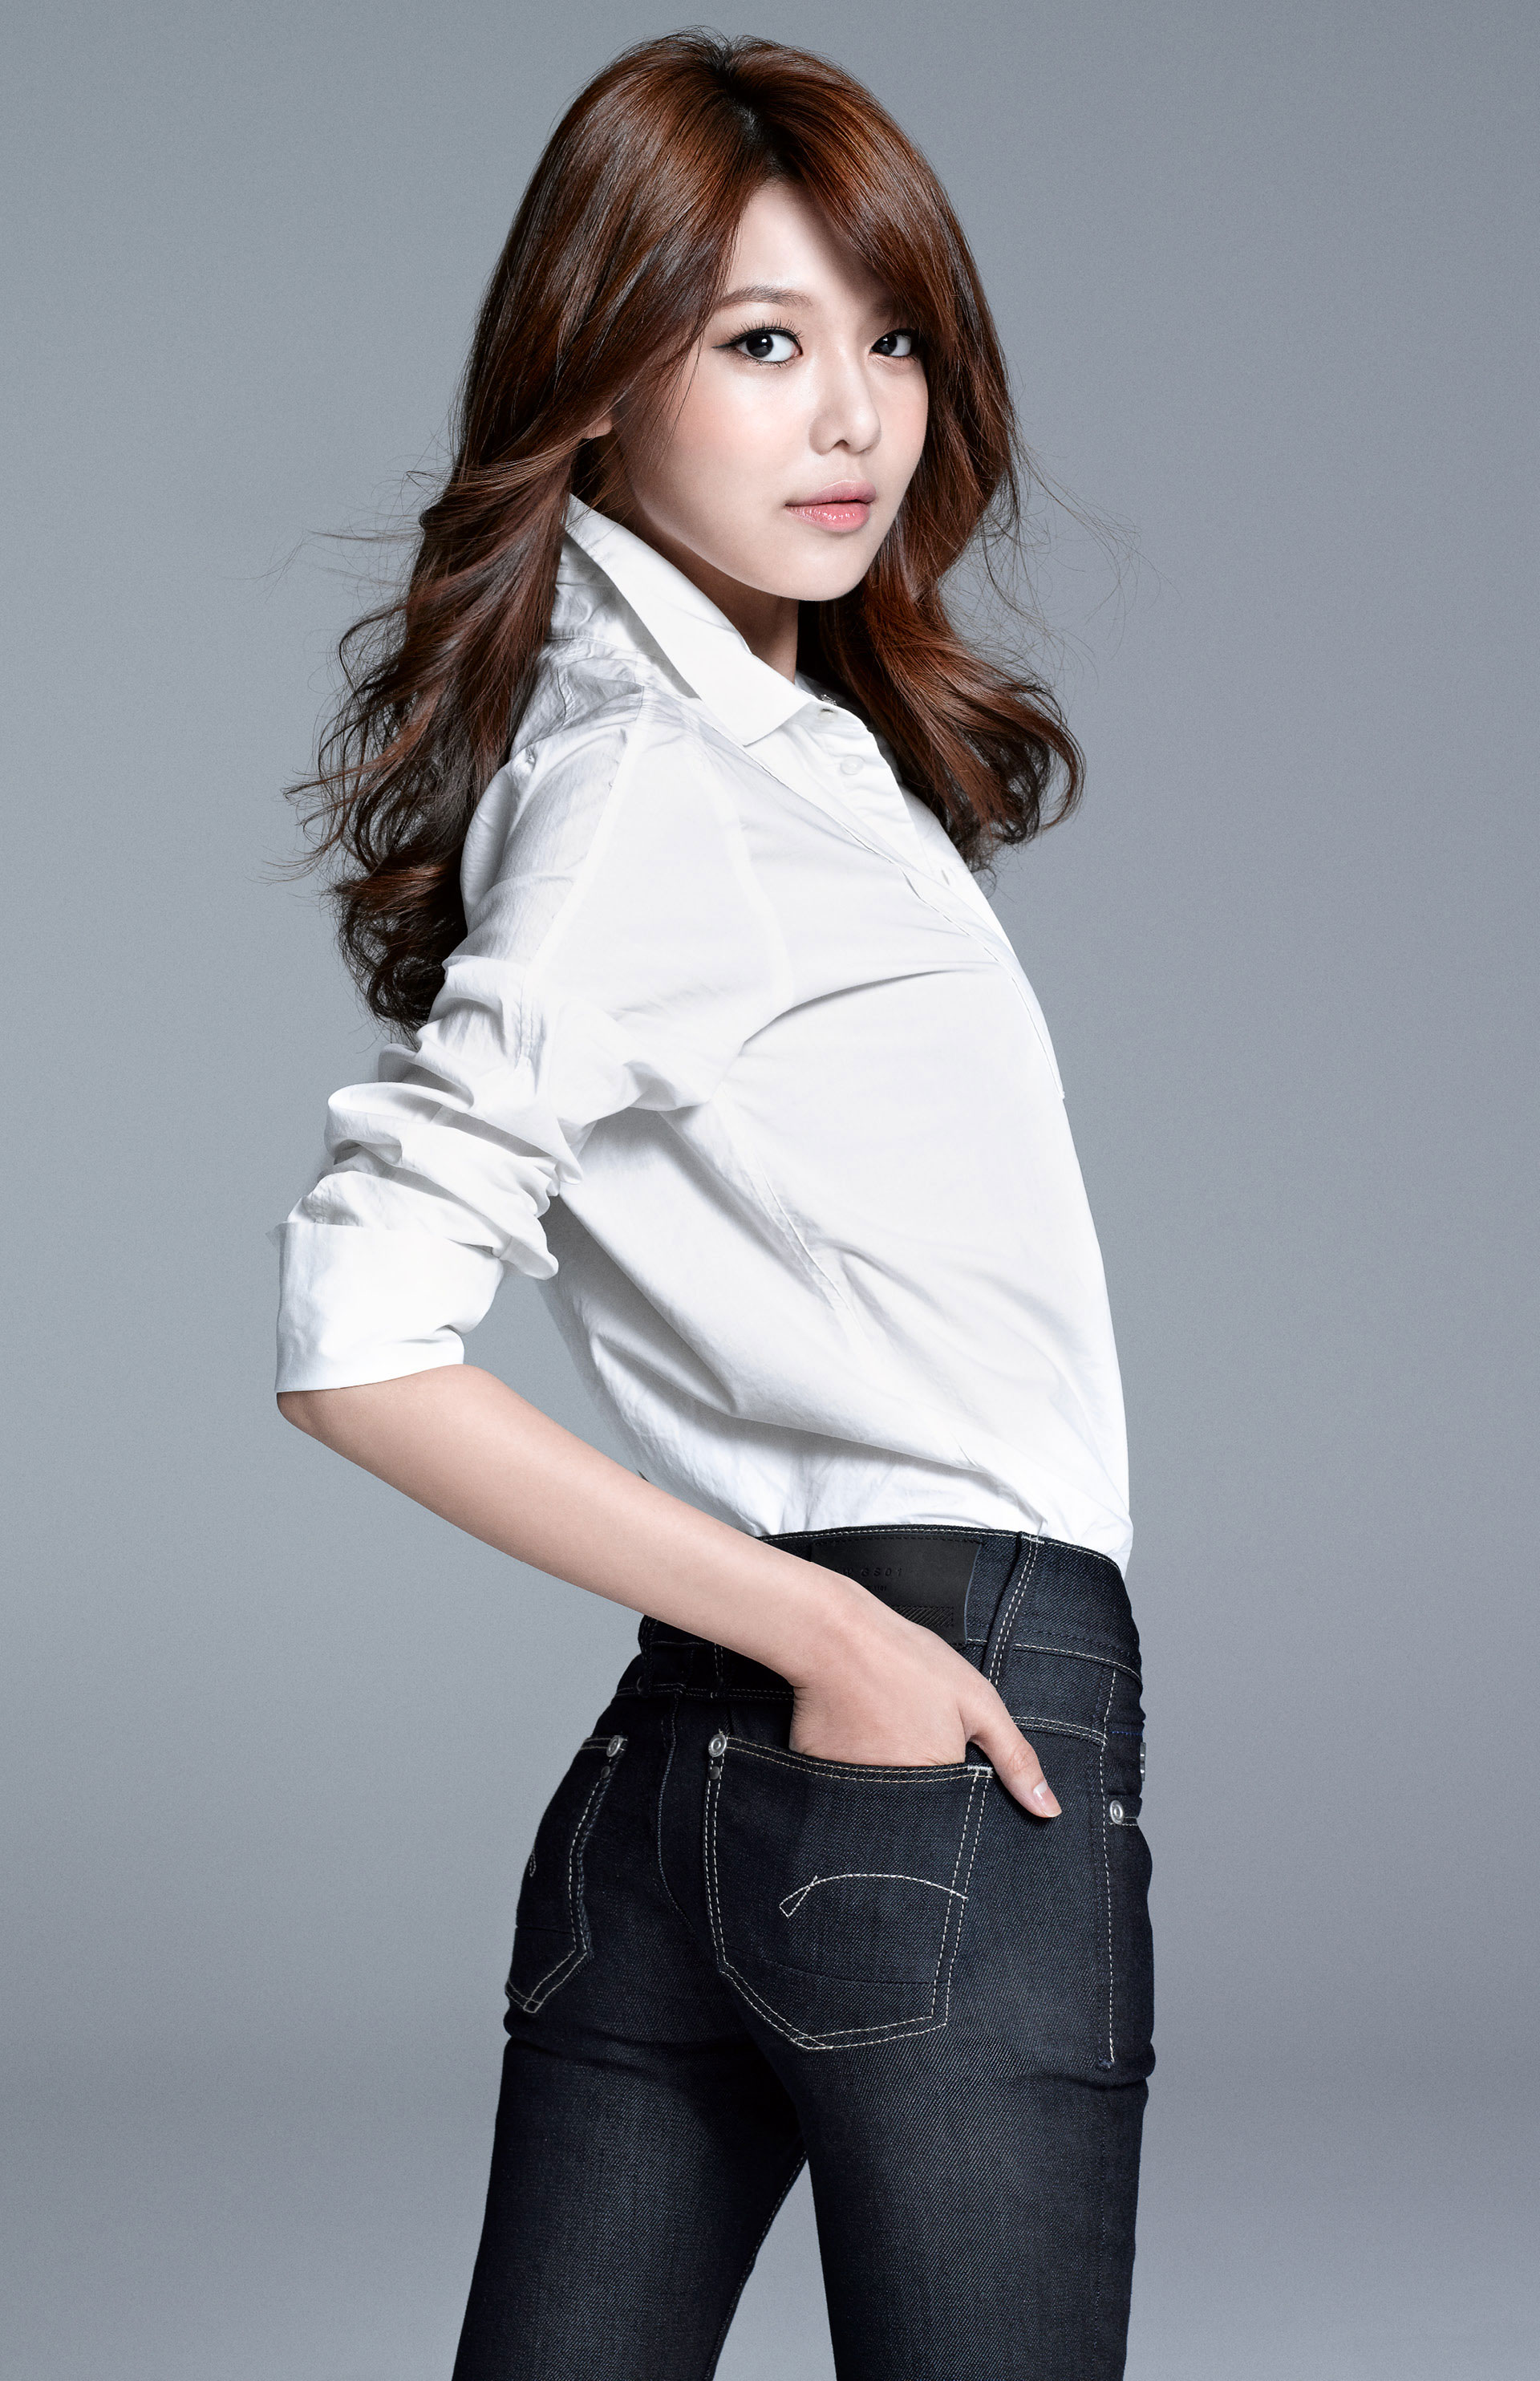 Snsd Sooyoung G-star Japan